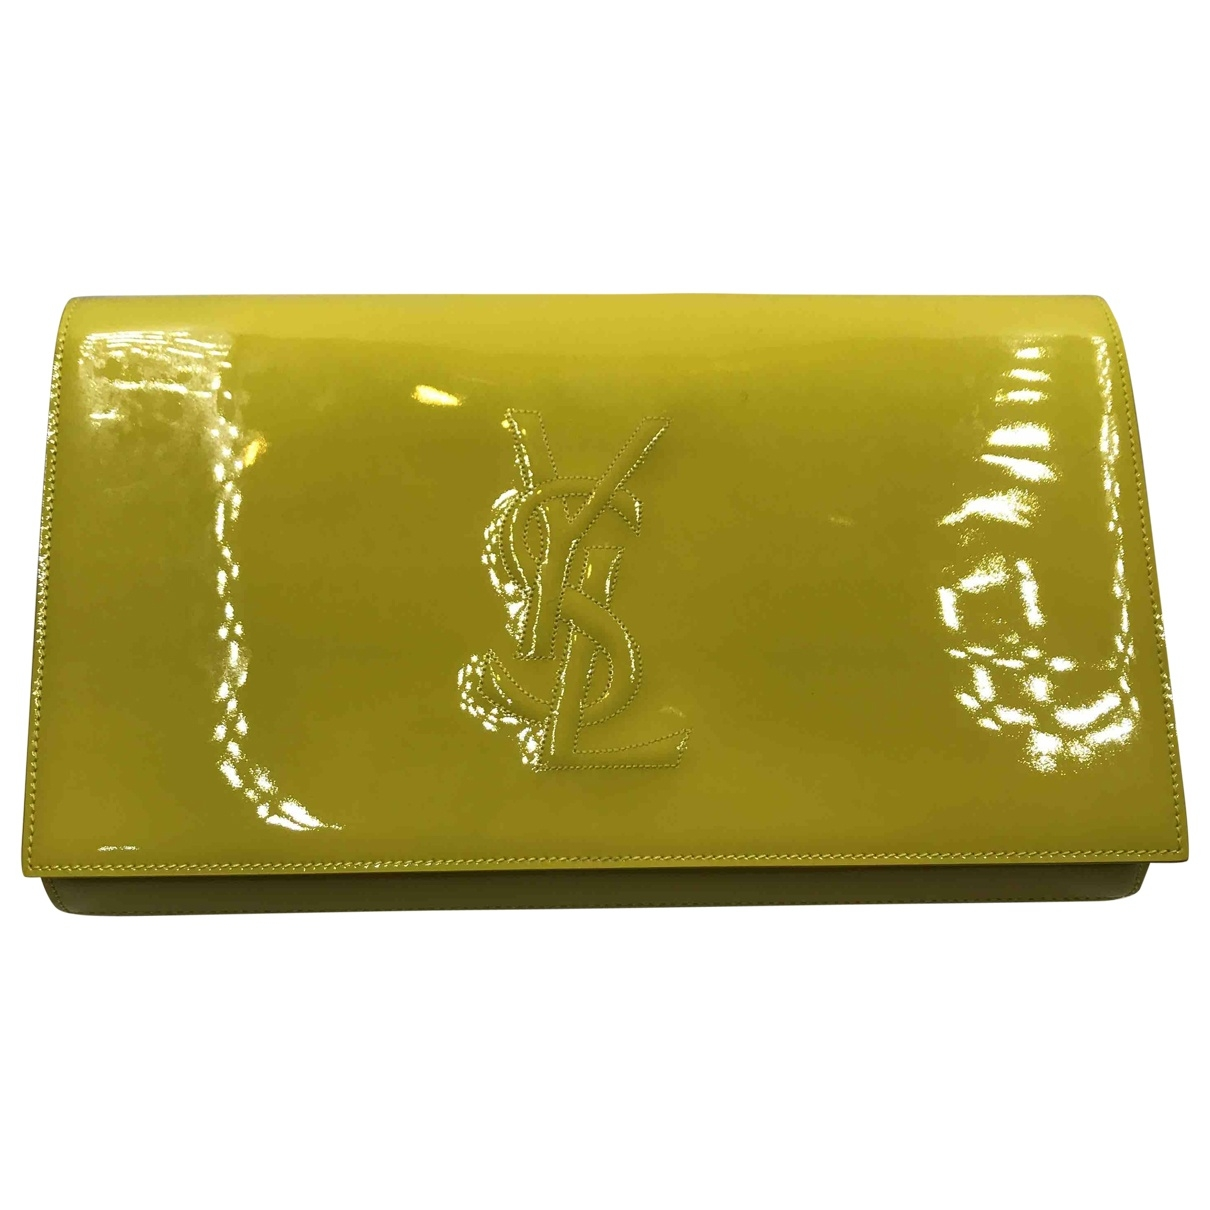 Saint Laurent Kate monogramme Yellow Leather Clutch bag for Women \N